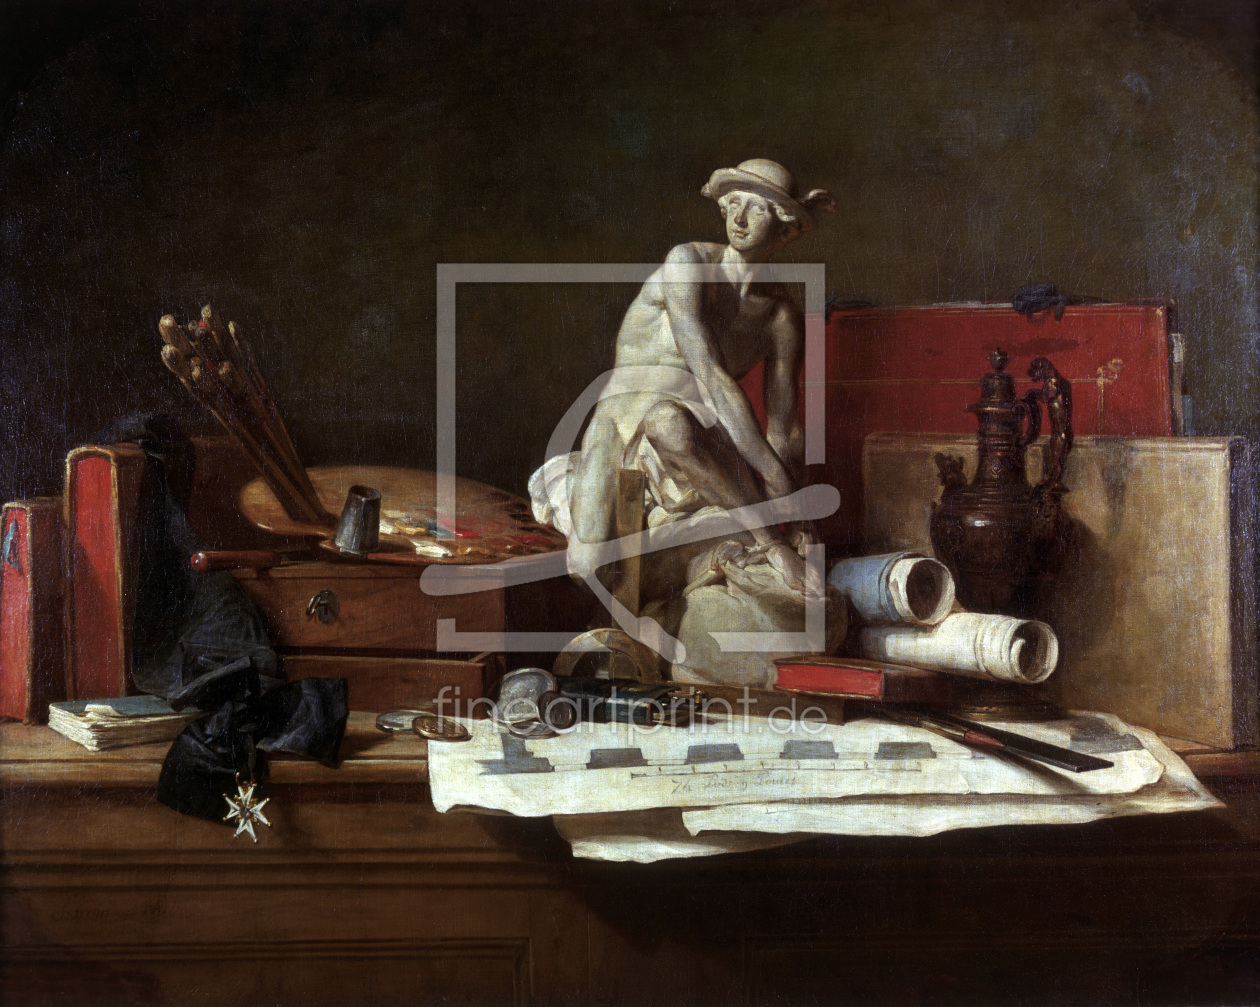 Bild-Nr.: 30007455 Chardin / The Attributes of the Arts erstellt von Chardin, Jean Siméon